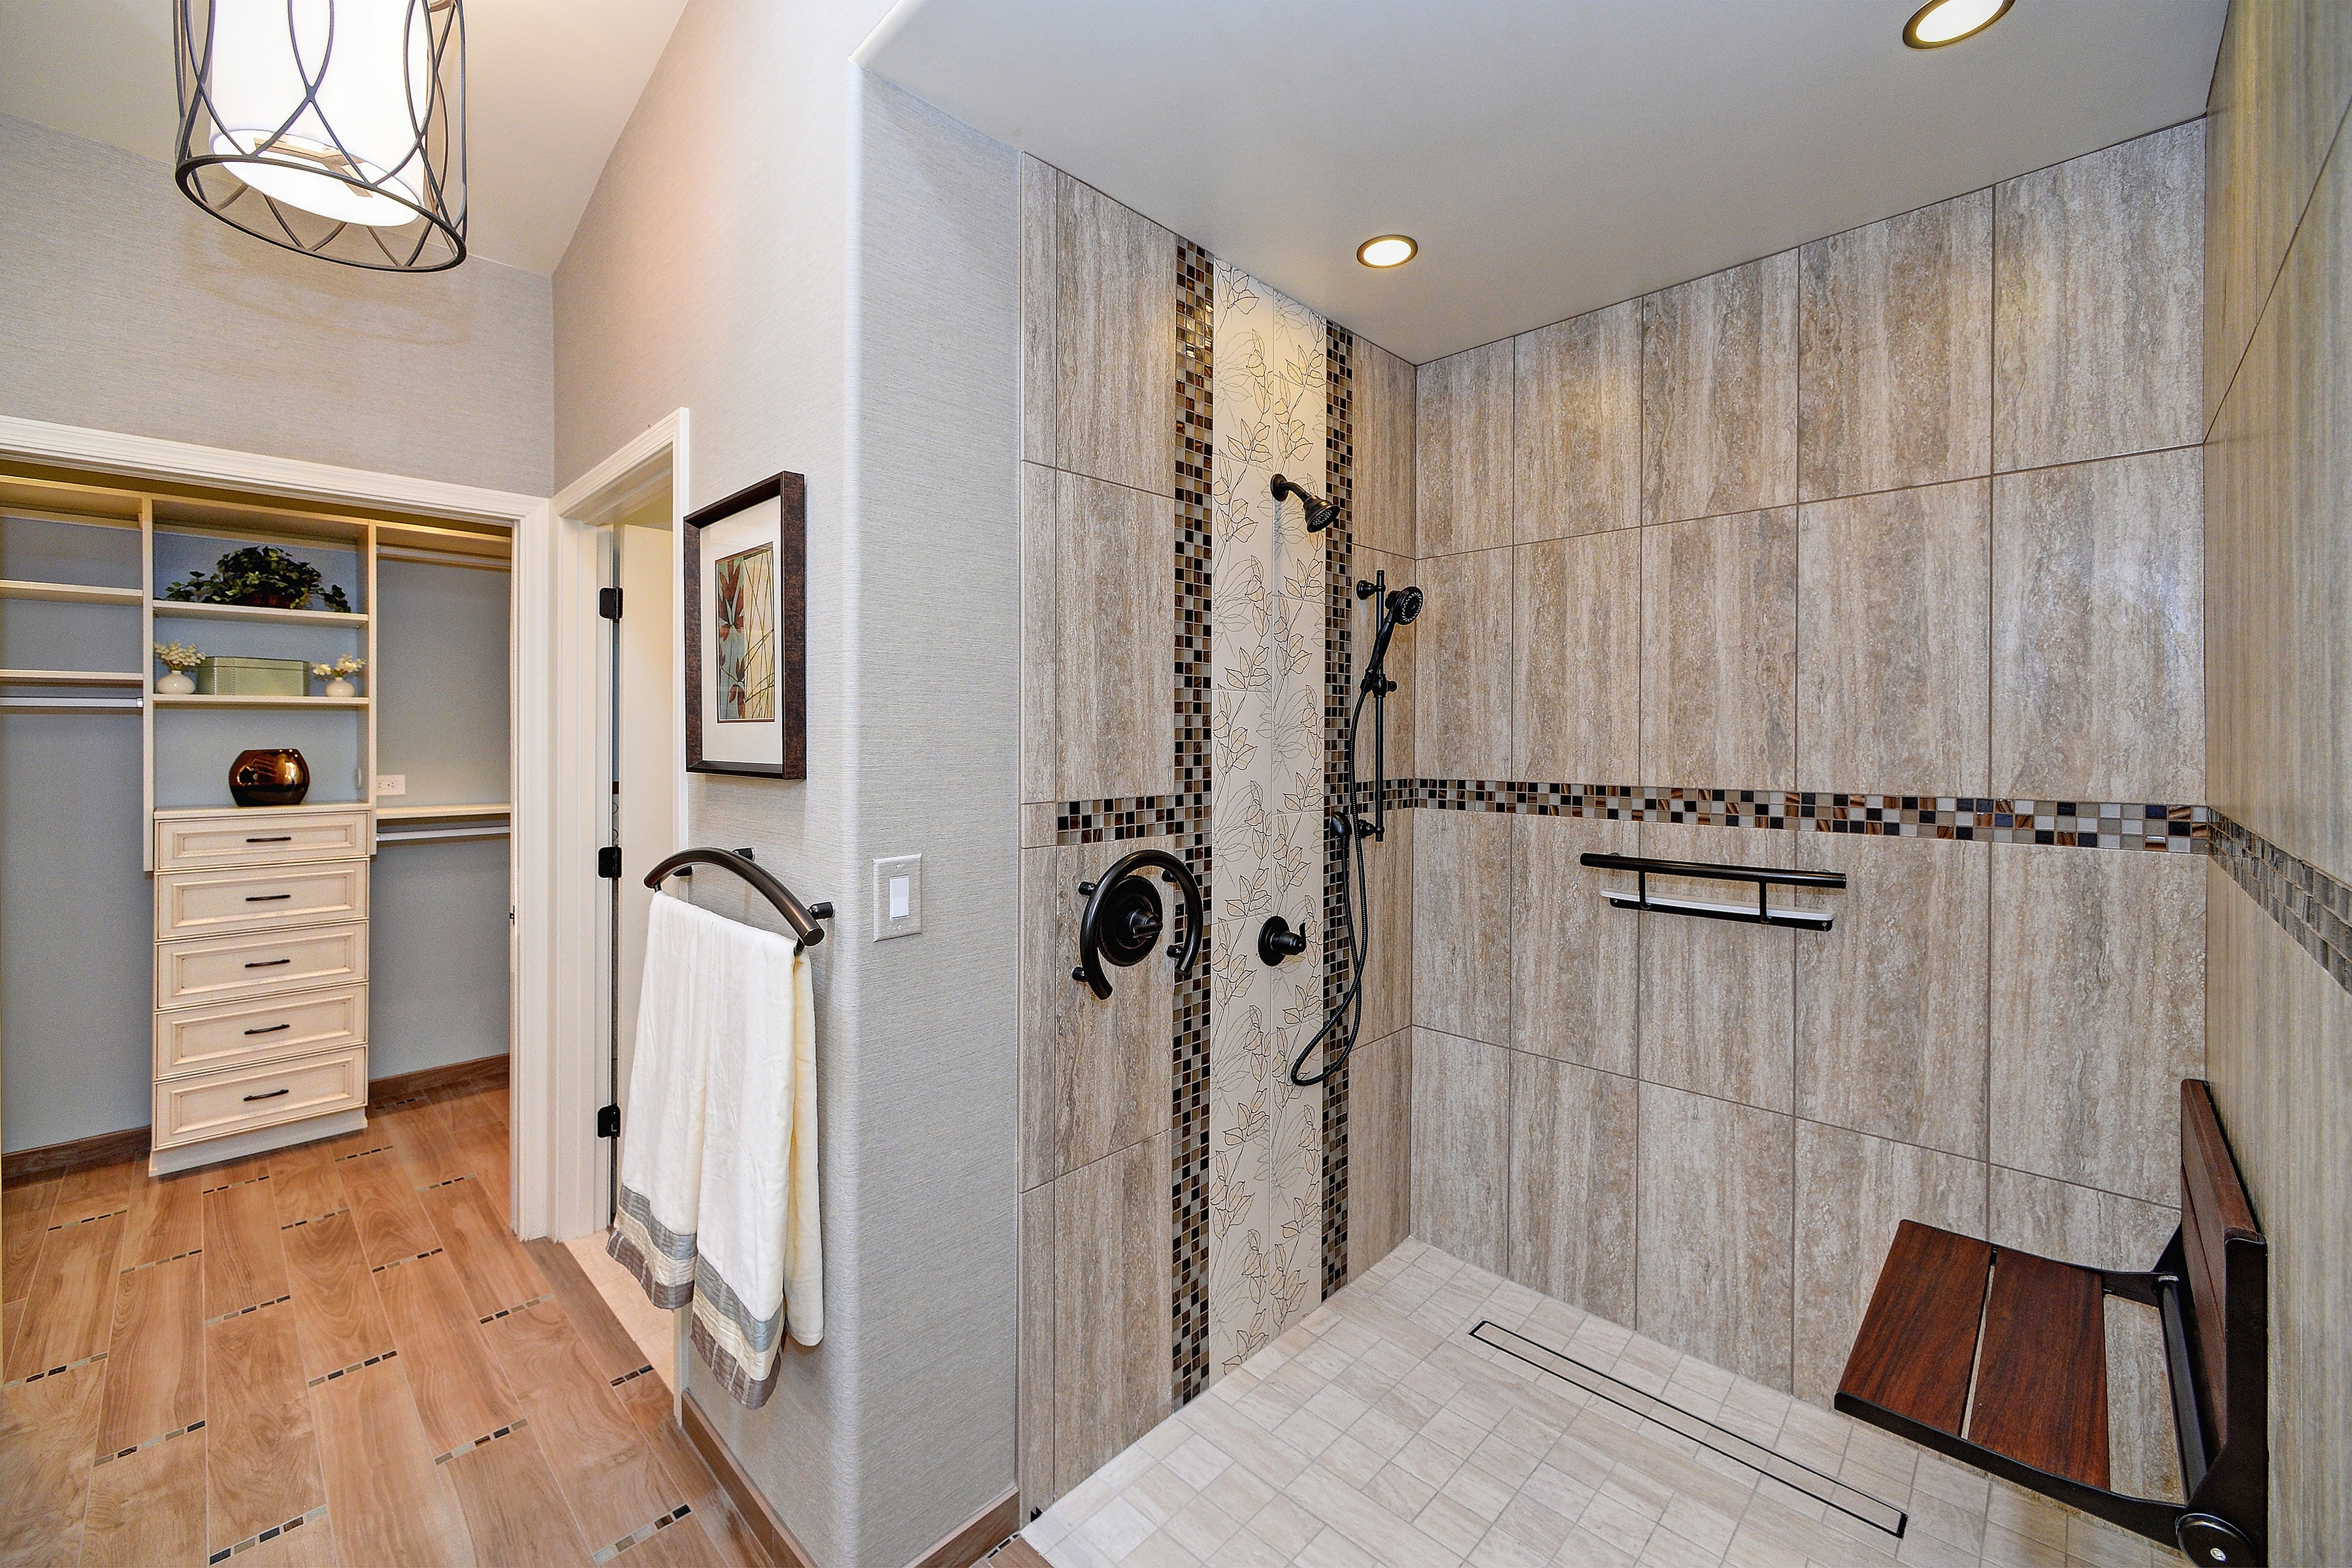 Contemporary Shower With Recessed Light Fixtures (Image 5 of 22)